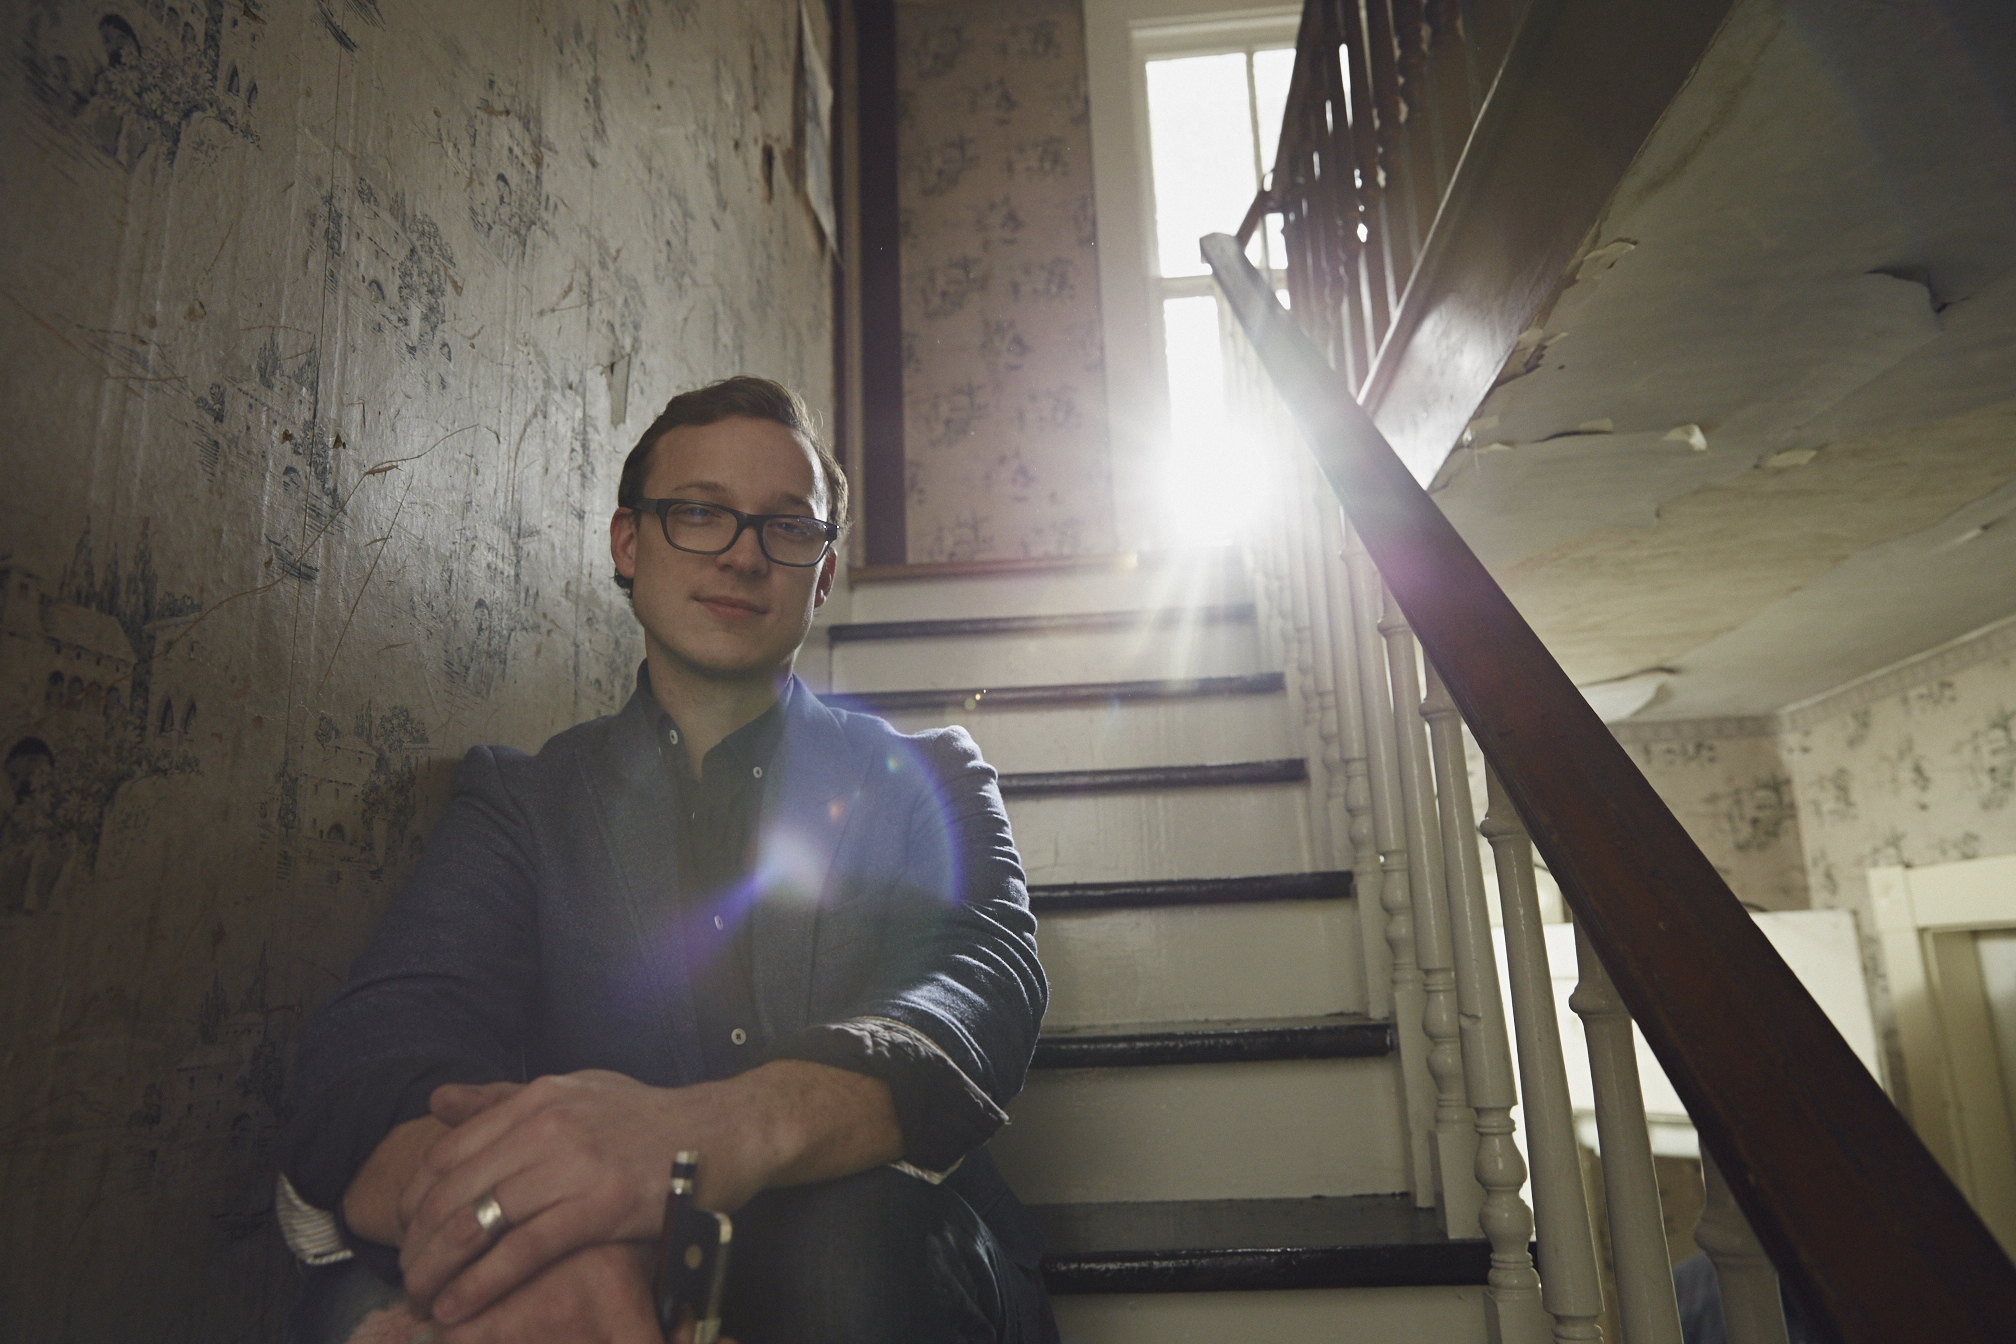 The Kentucky Q&A with Ben Sollee    client: Kentucky Tourism / Garden & Gun Magazine  Documentary Short, Social Media Clips, Portrait Photography       VIEW PROJECT